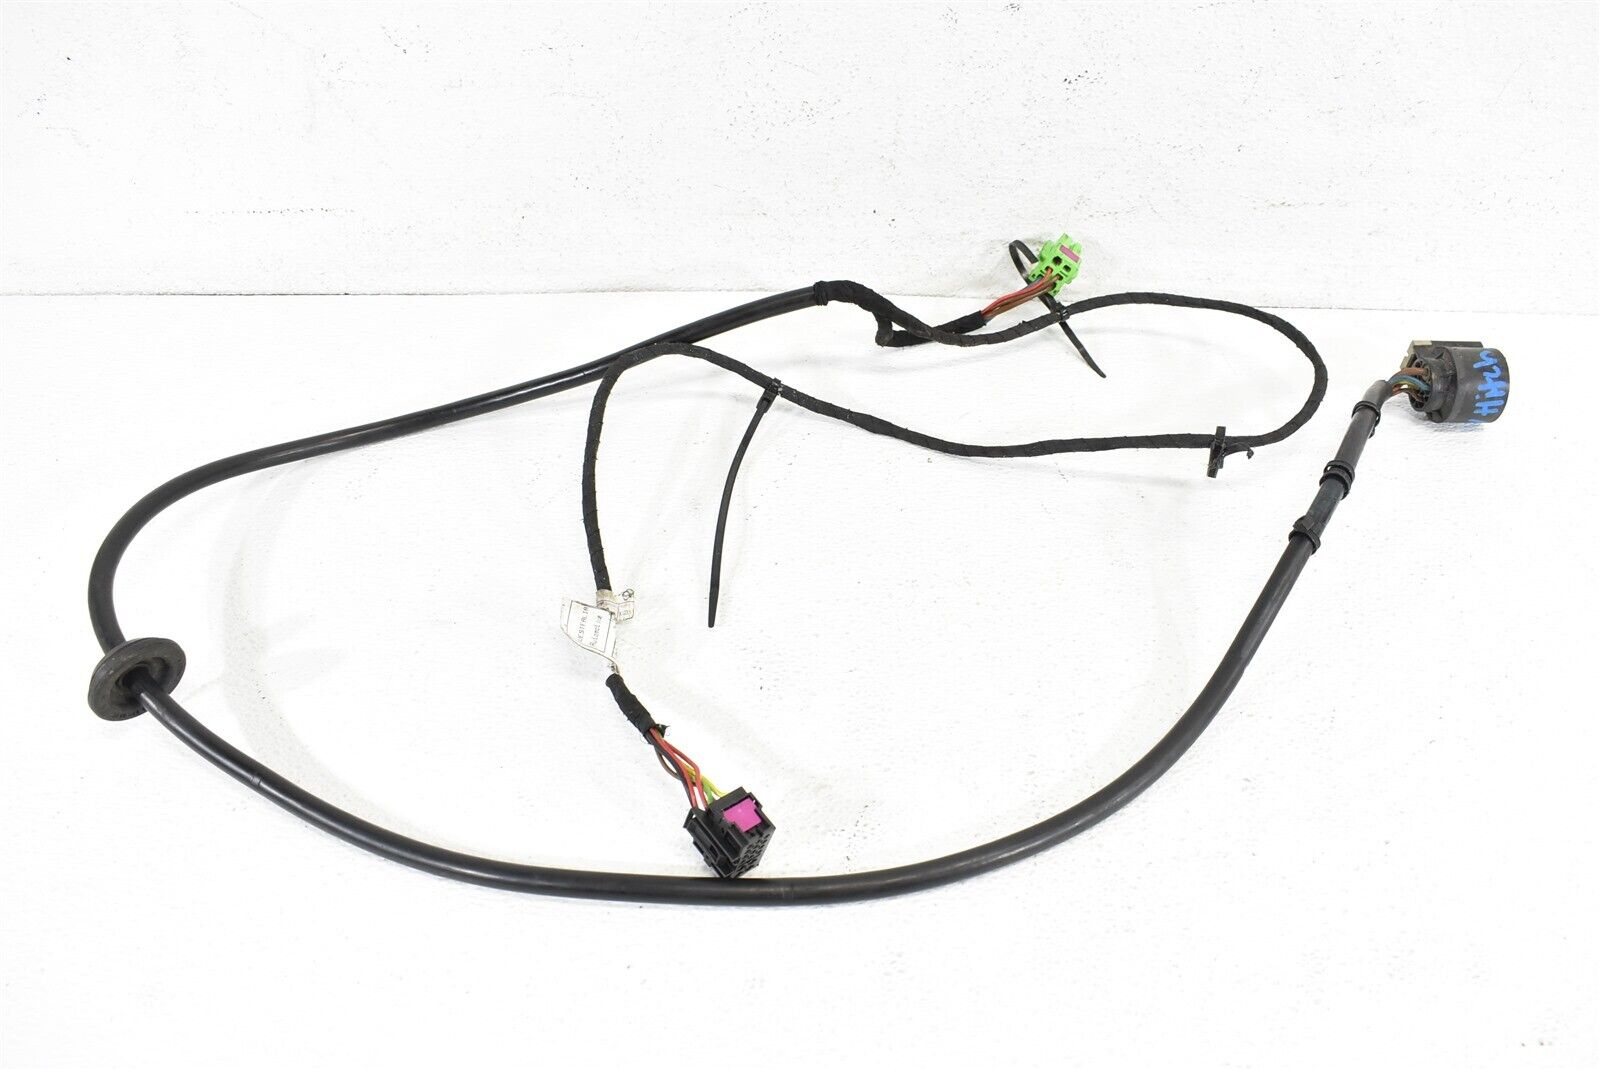 2003-2010 Porsche Cayenne Towing Tow Hitch Wiring Harness